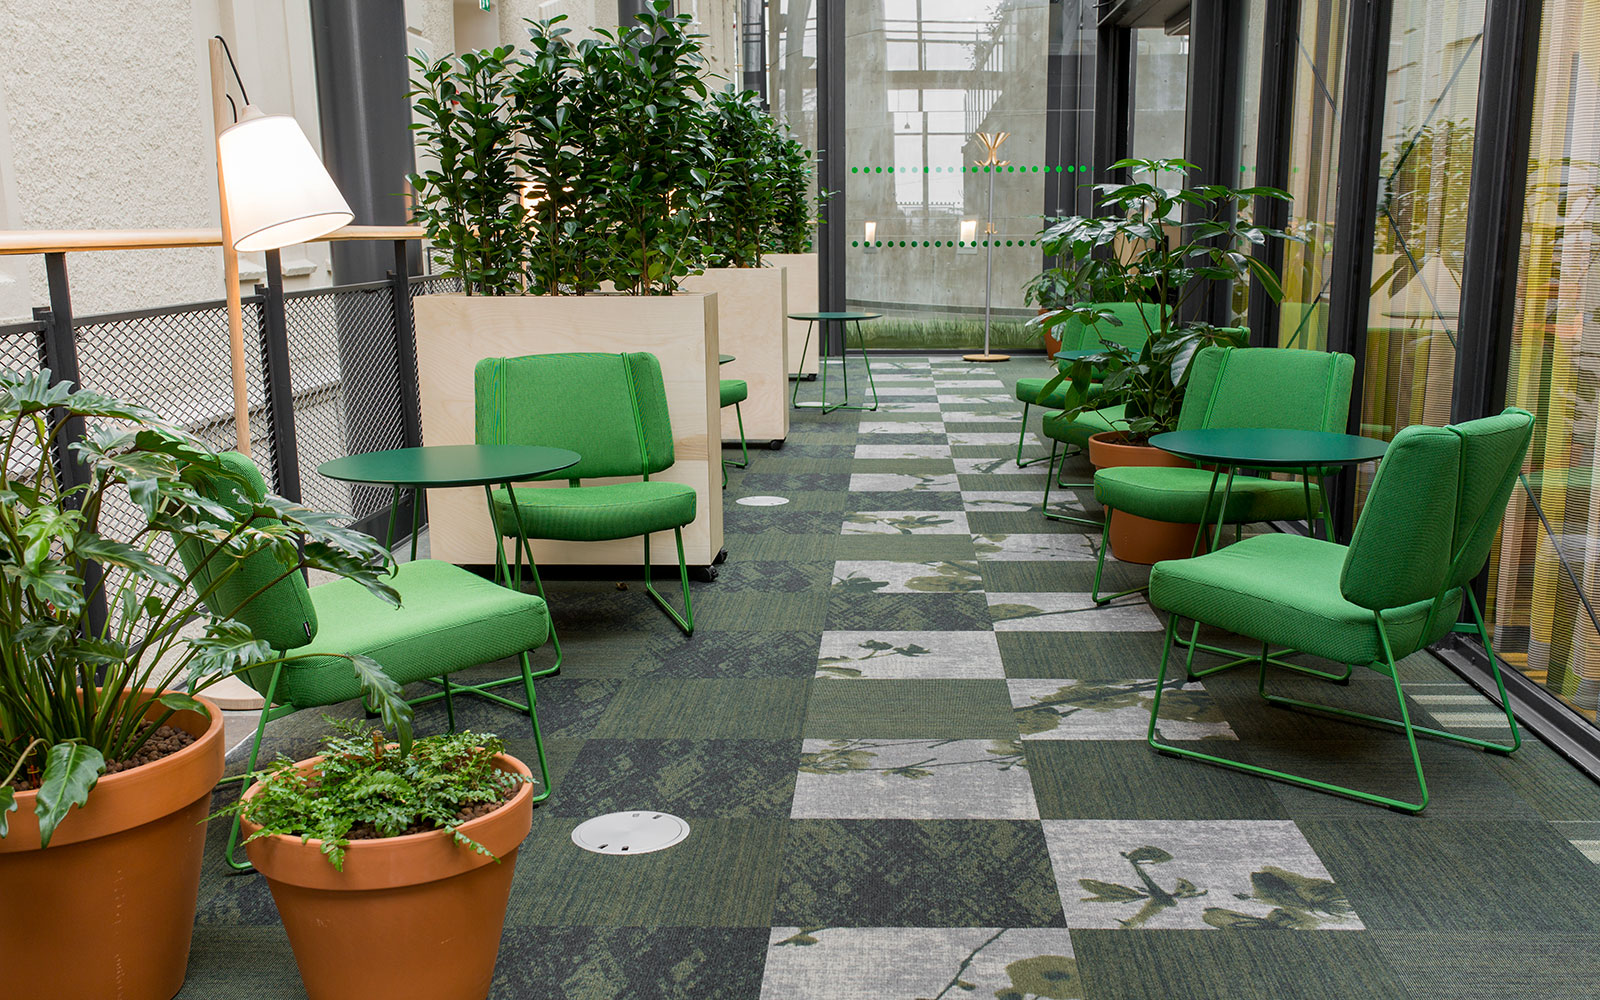 Environmentally friendly Rawline Scala Ecotrust carpet tiles by ege, checkered with green and beige patterns